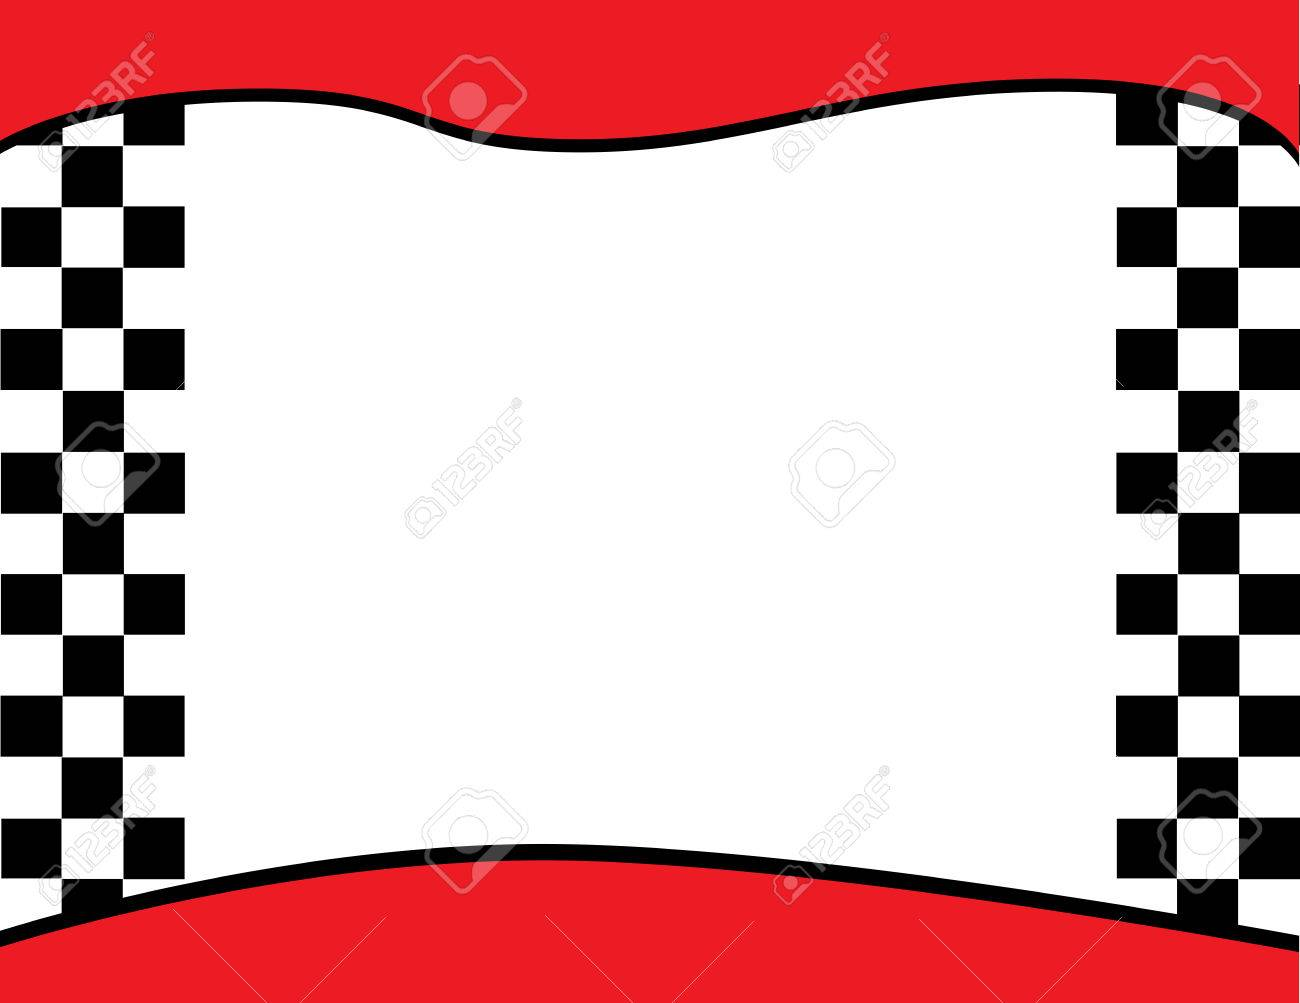 checkered flag border background royalty free cliparts vectors and rh 123rf com red checkered border clip art free black checkered border clip art